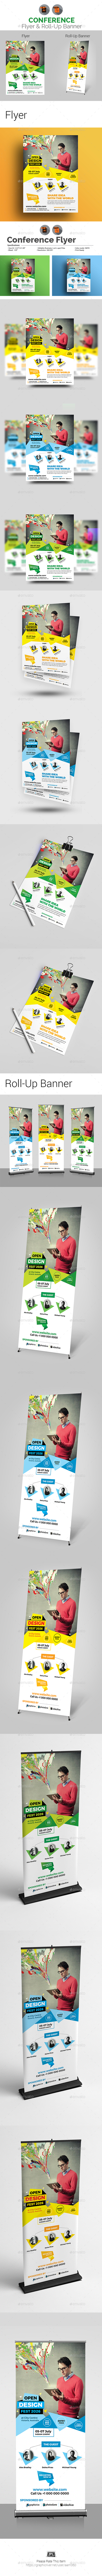 Event | Conference Flyer & Roll-Up Banner Bundle - Print Templates